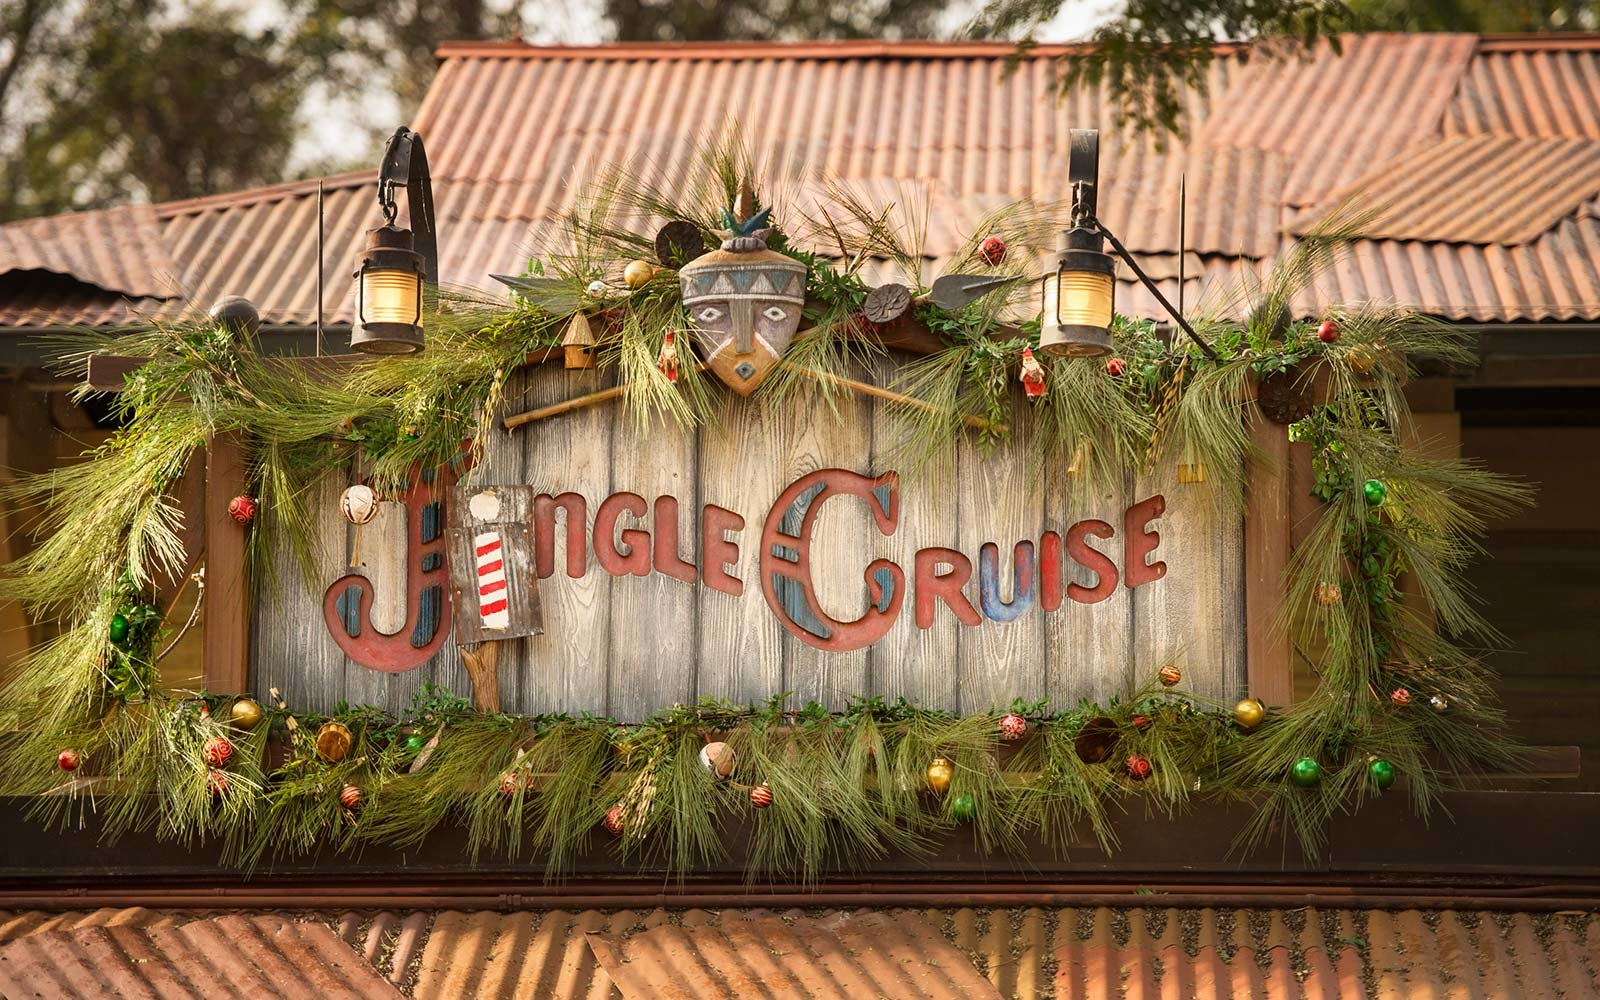 Jingle Jungle Cruise attraction Disney Disneyland Anaheim California Orlando Florida Holiday ride